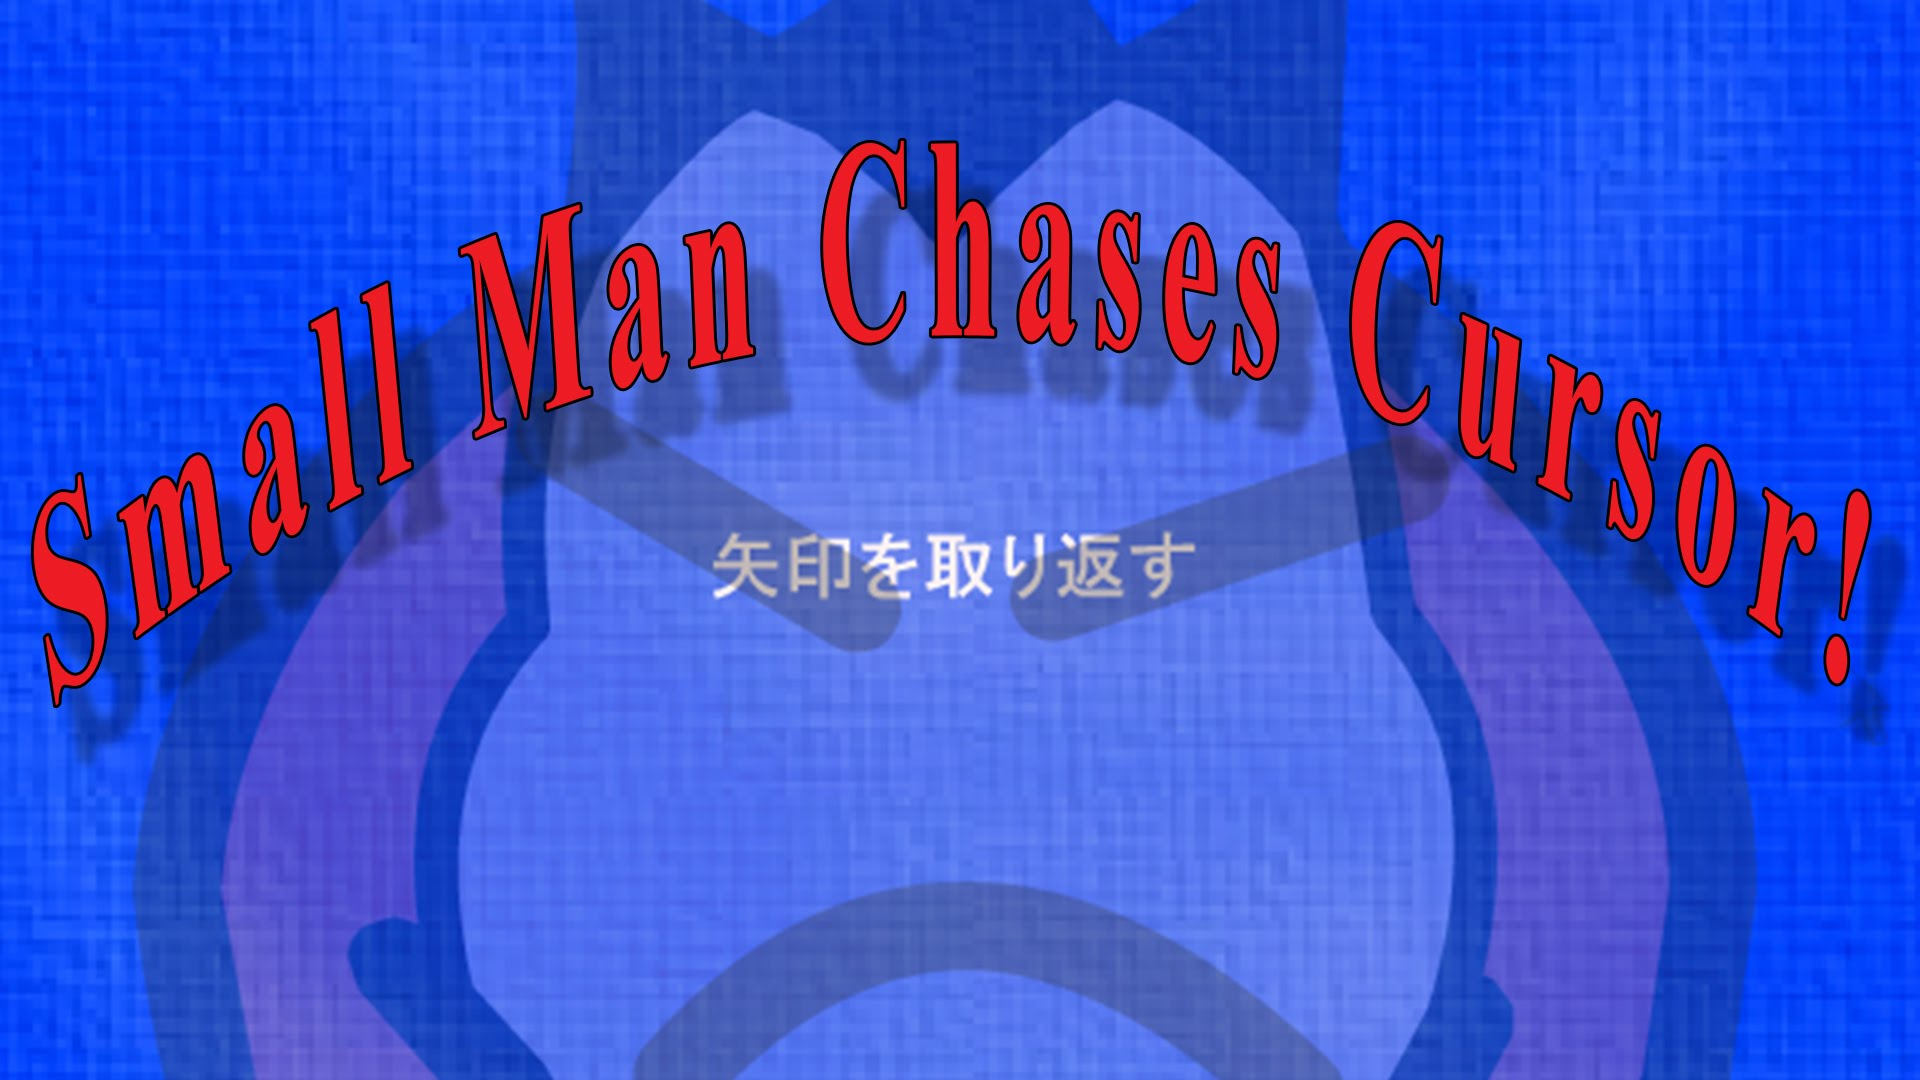 Small Man chases cursor